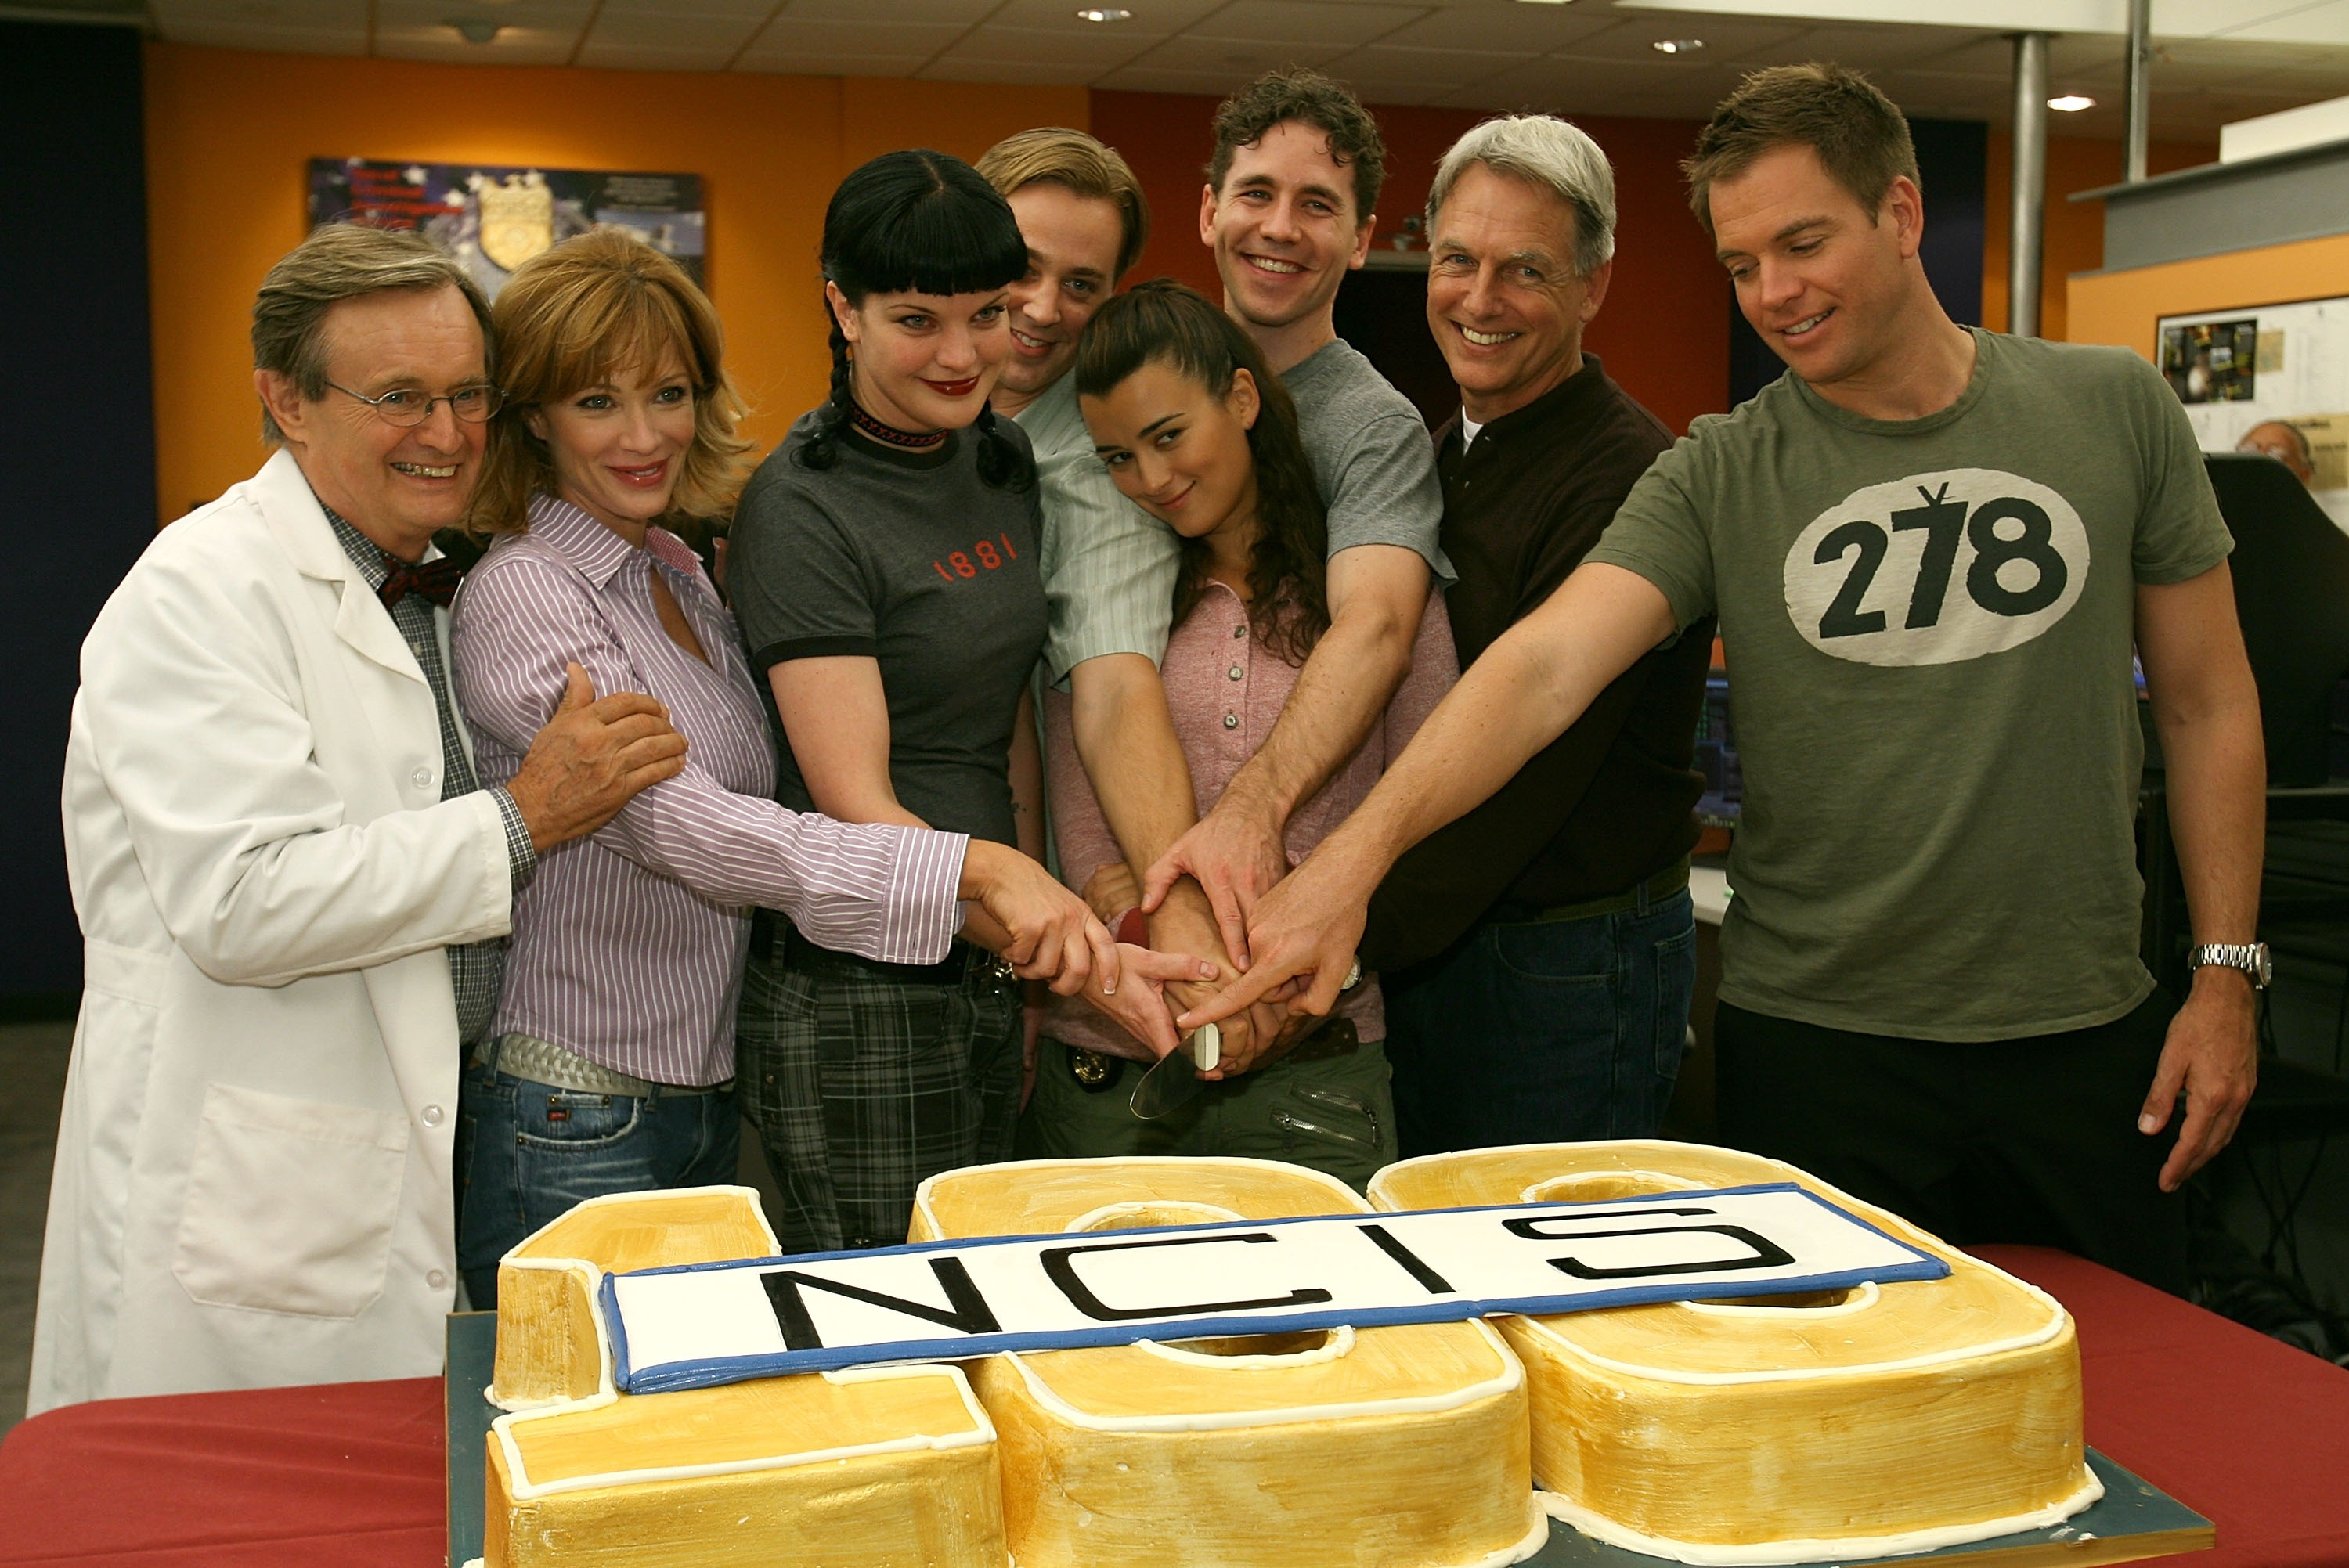 NCIS cast in 2007